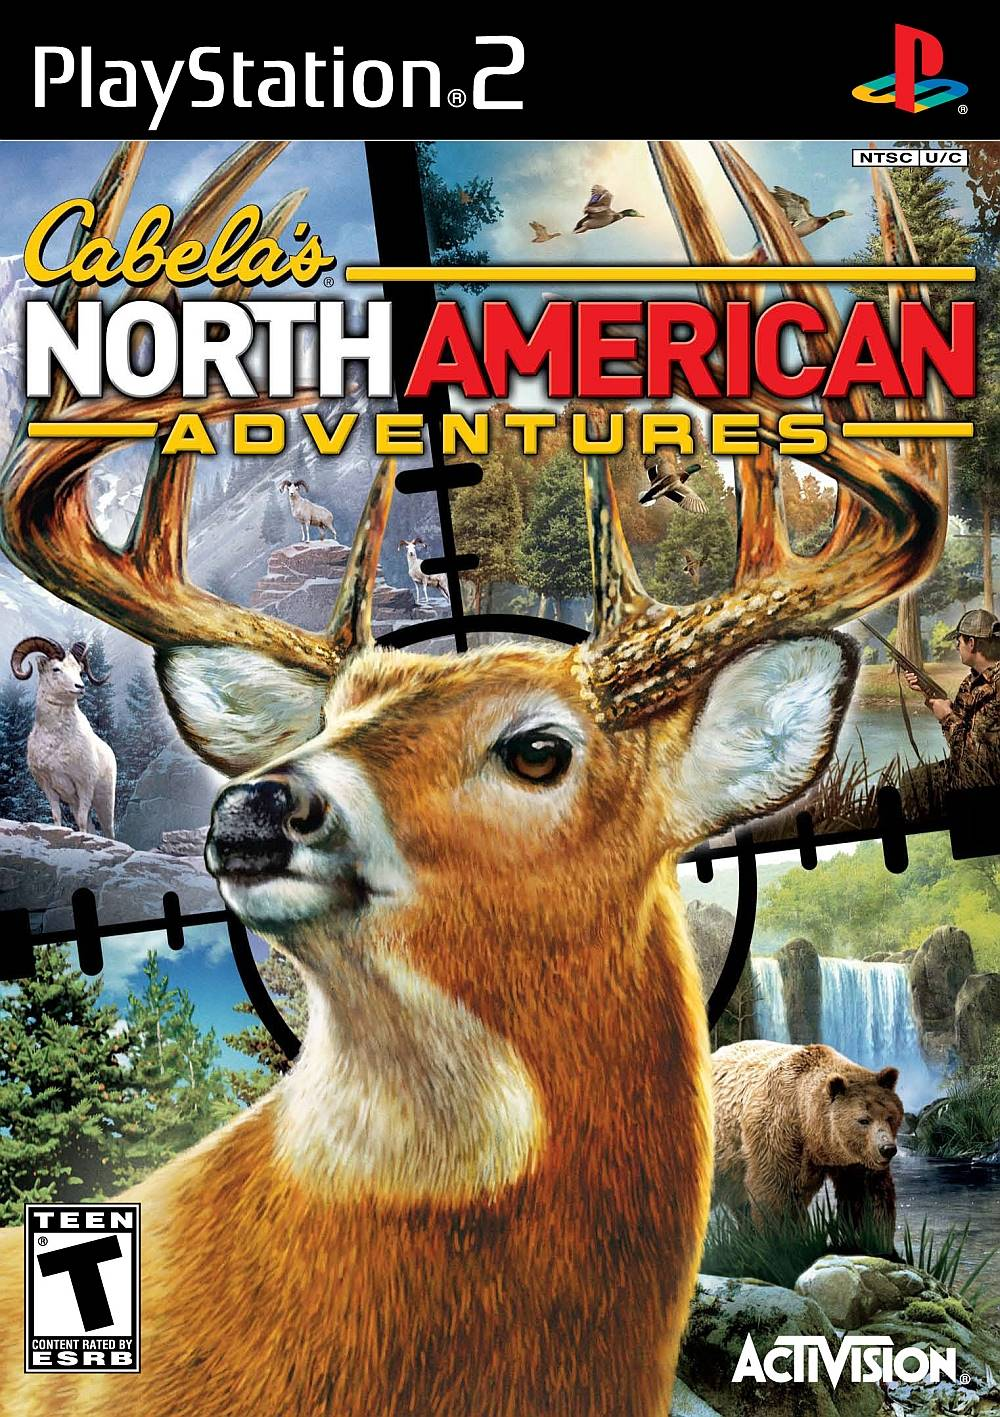 PS2 Cabelas North American Adventure Playstation 2 Game